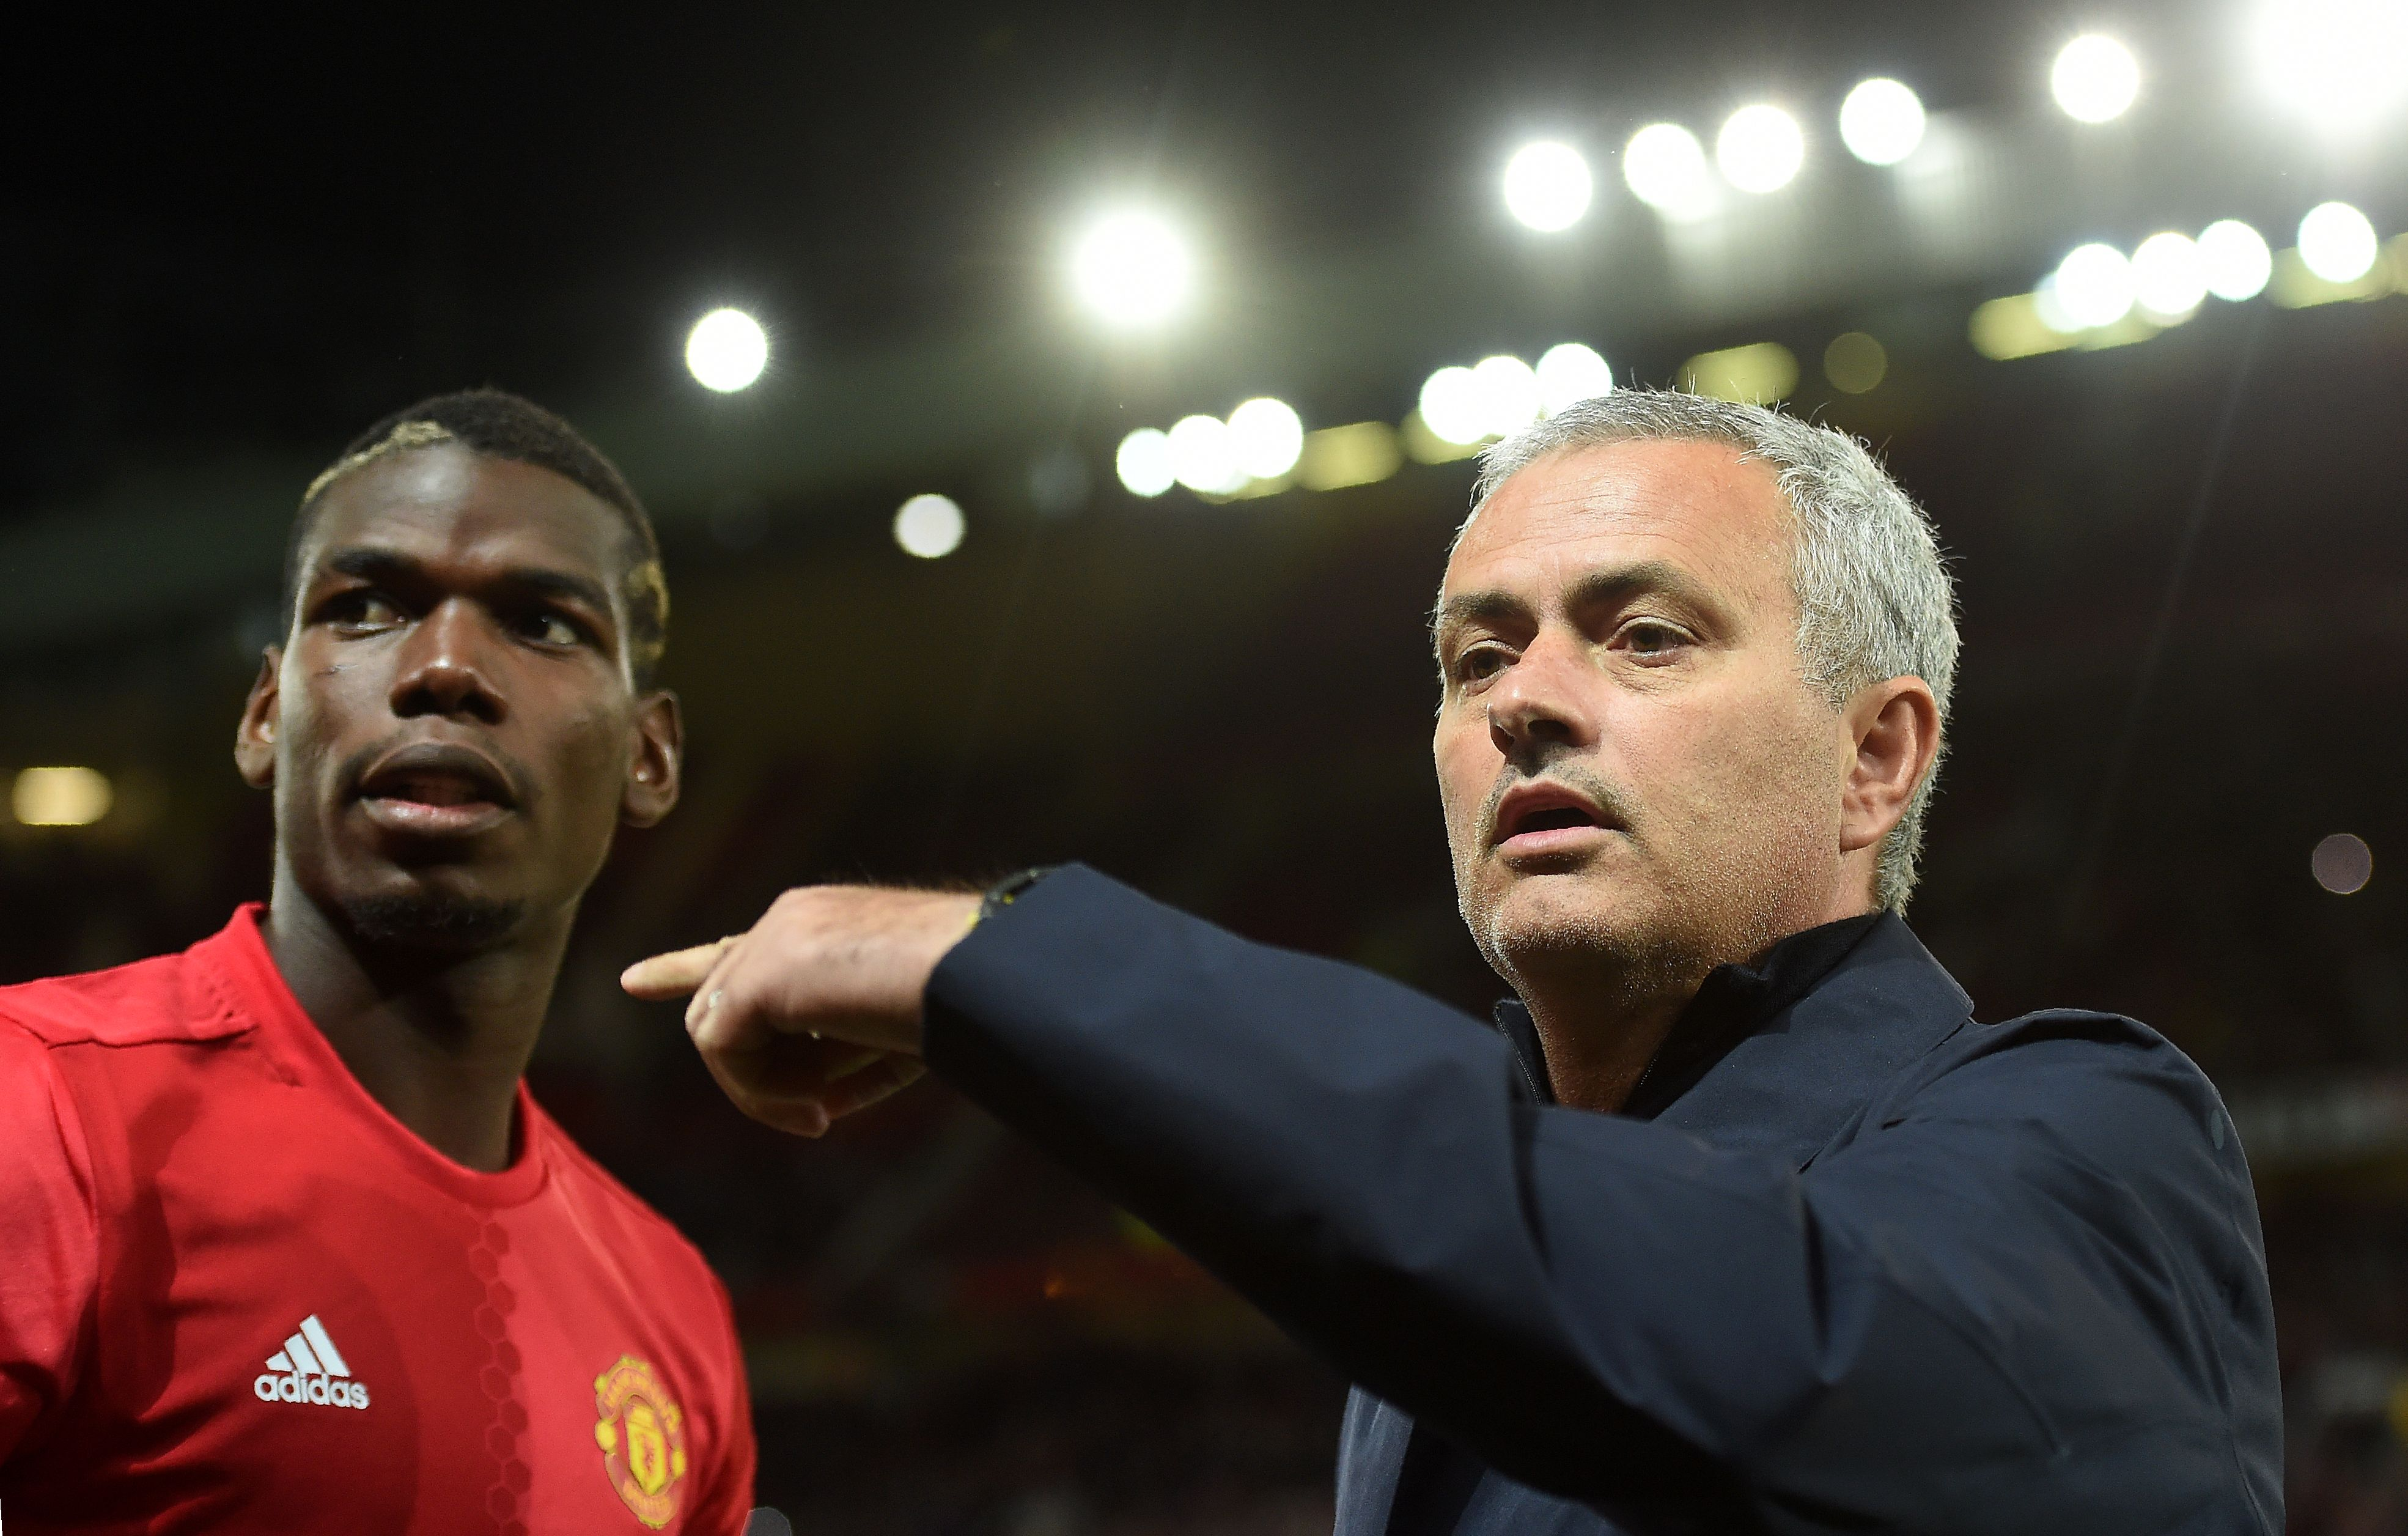 Jose Mourinho has identified the perfect midfield partner for Paul Pogba at Manchester United